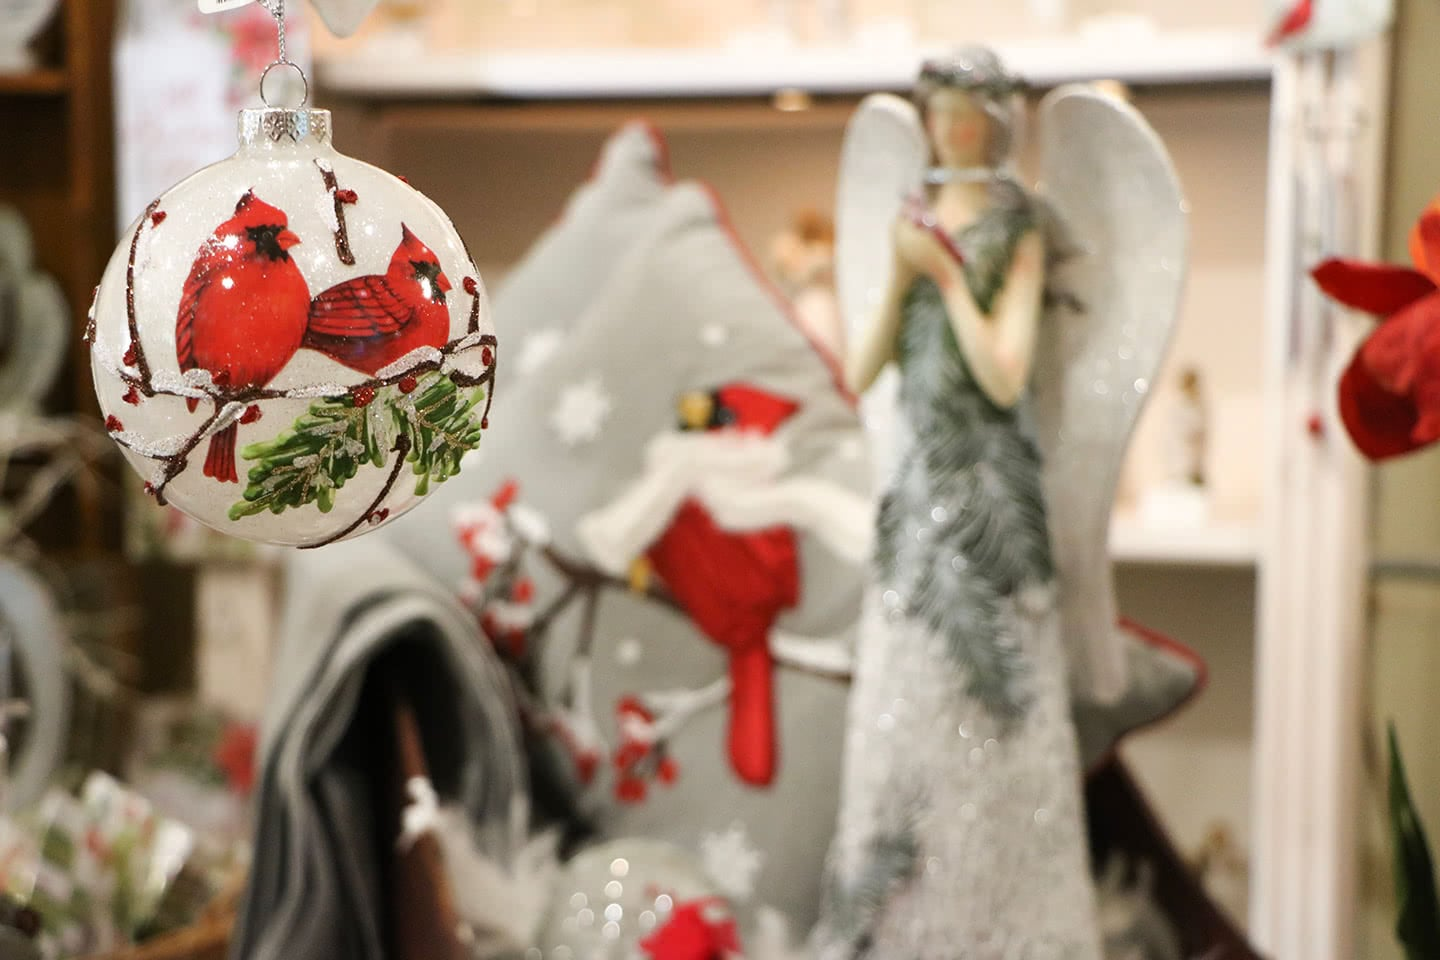 Cardinal Ornaments and Angel Figurines for the Holidays